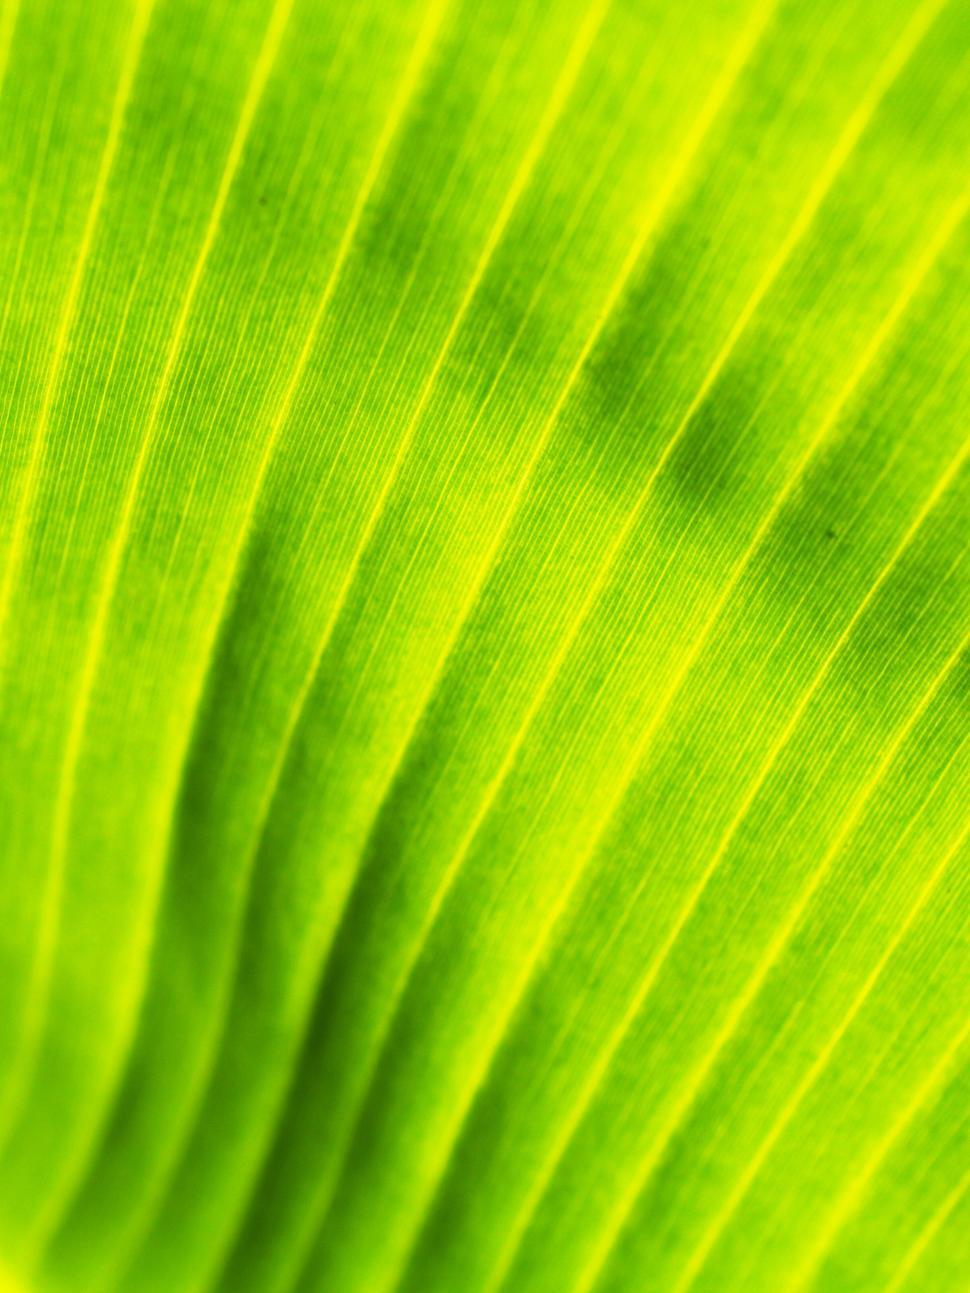 Download Free Stock Photo of Banana Leaf - Texture